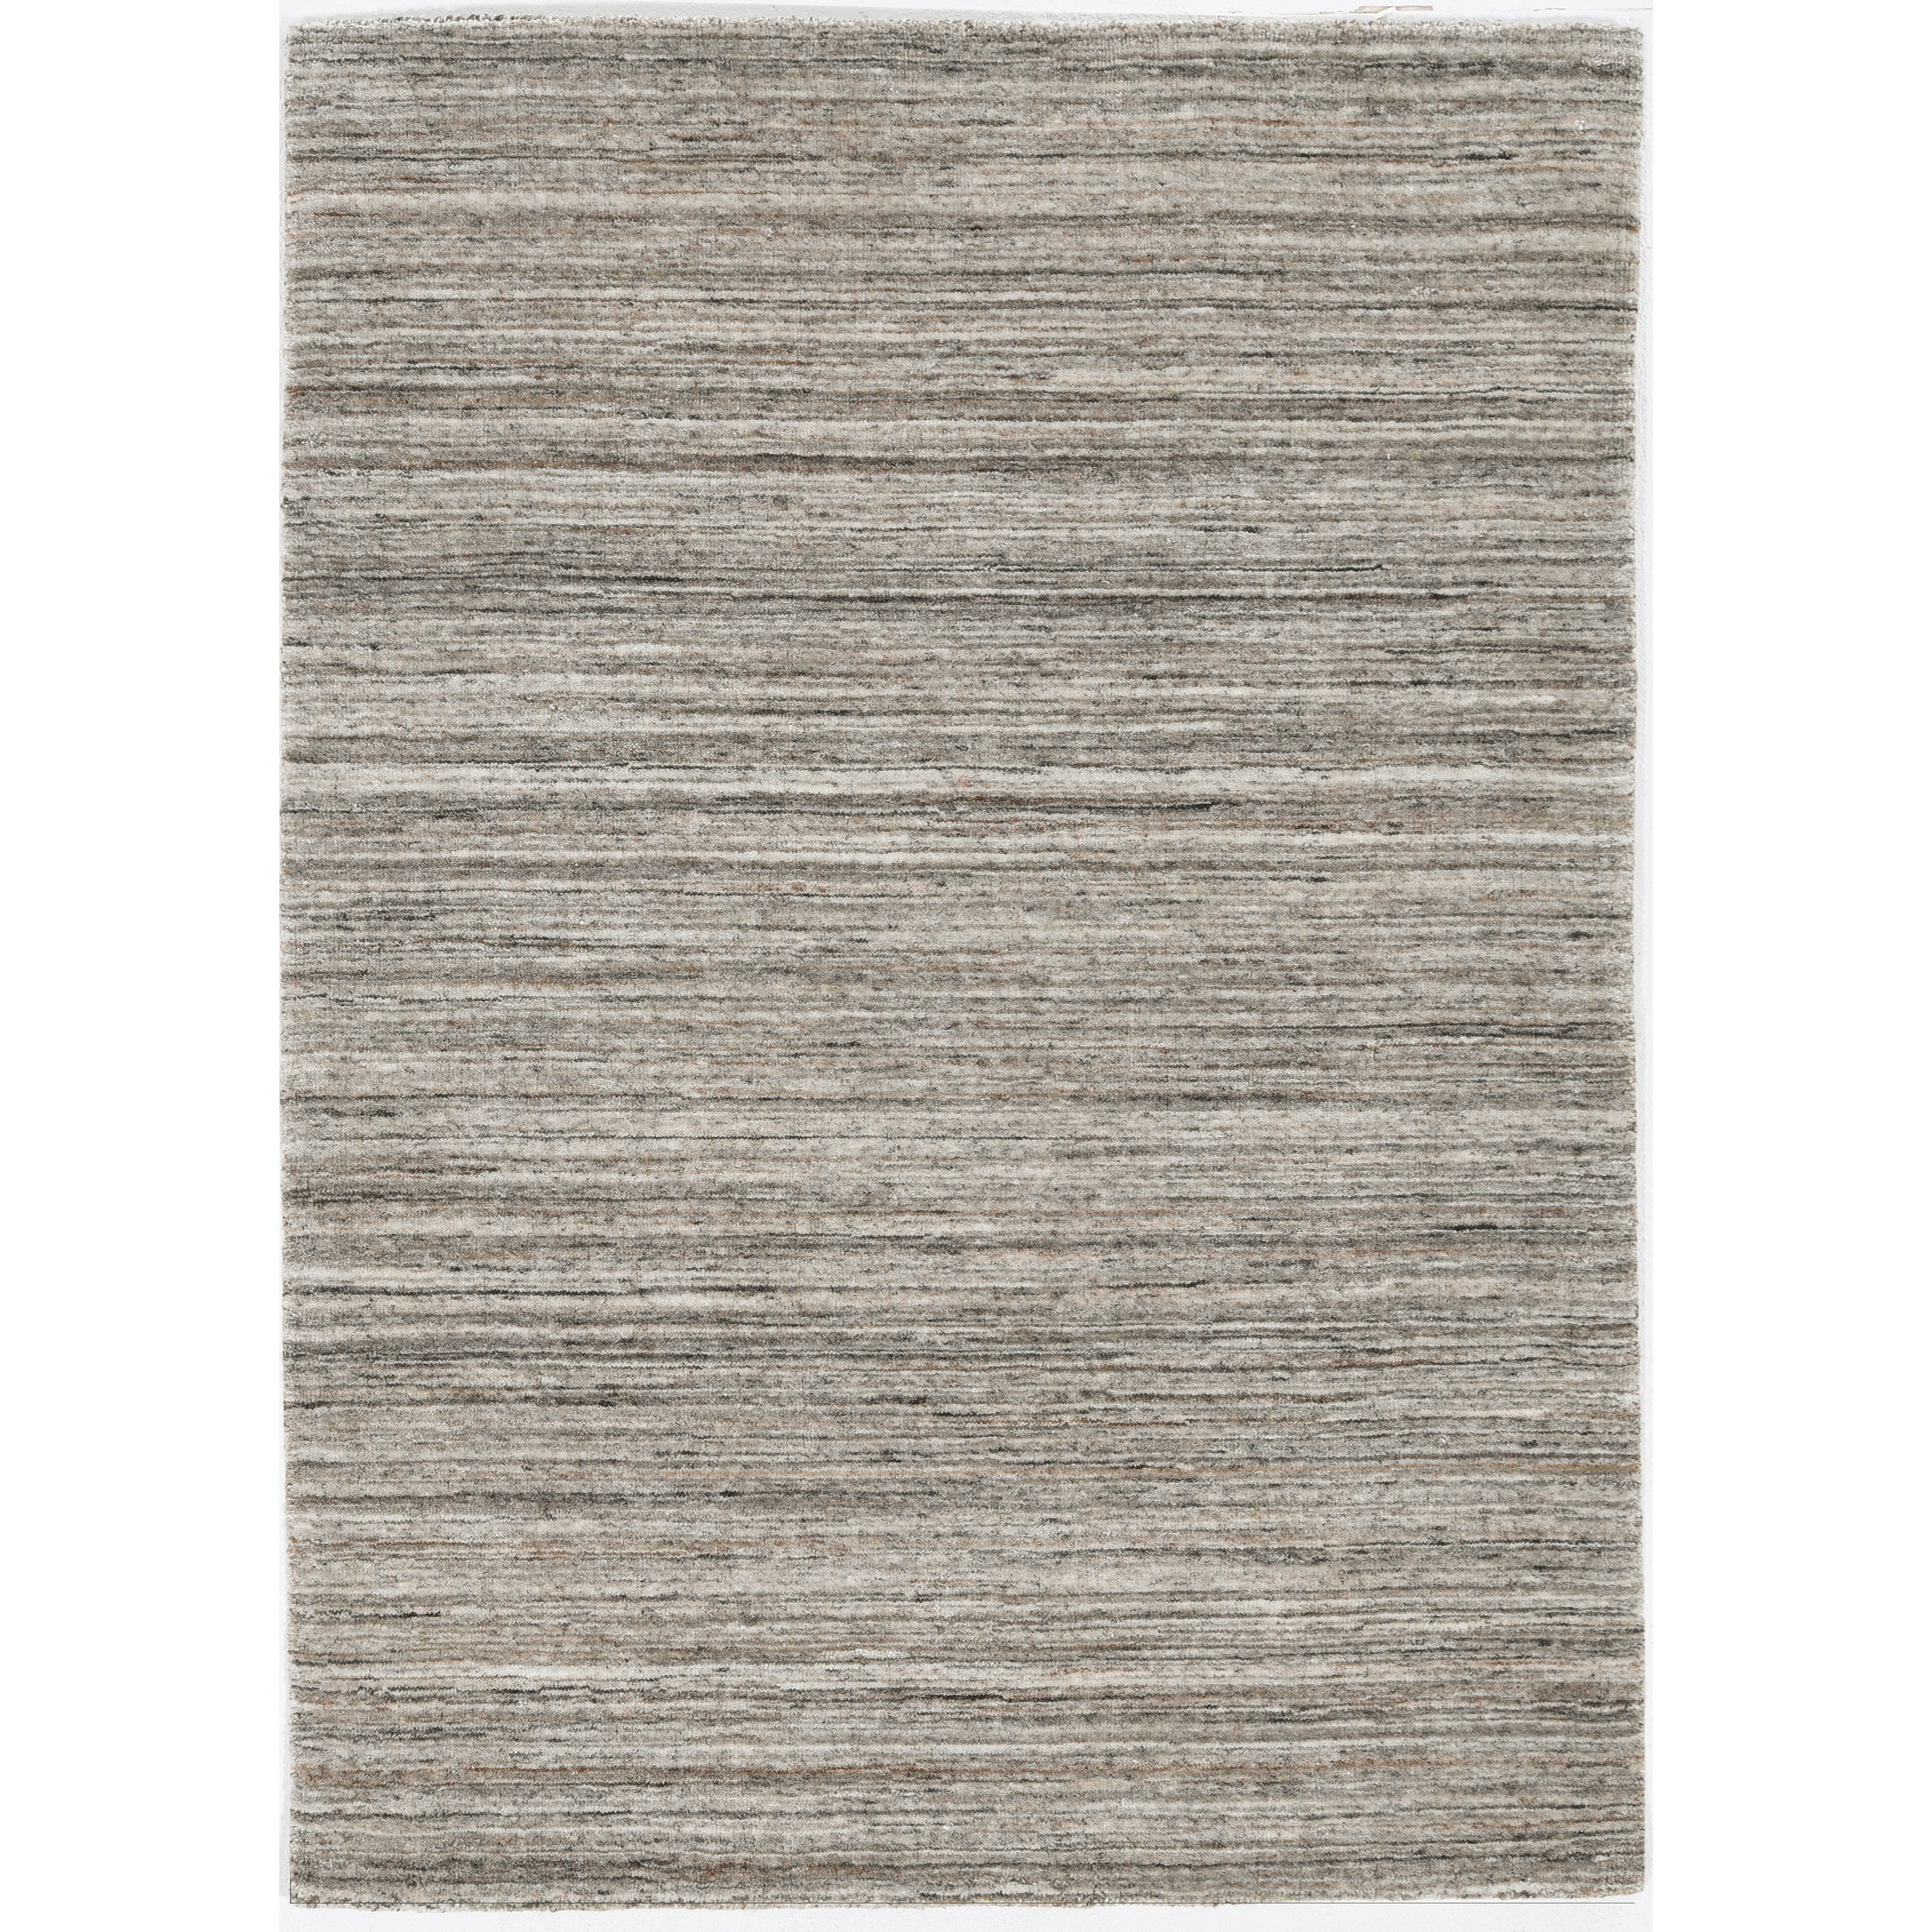 Dune 9' x 12' Sand Villa Rug by Kas at Zak's Home